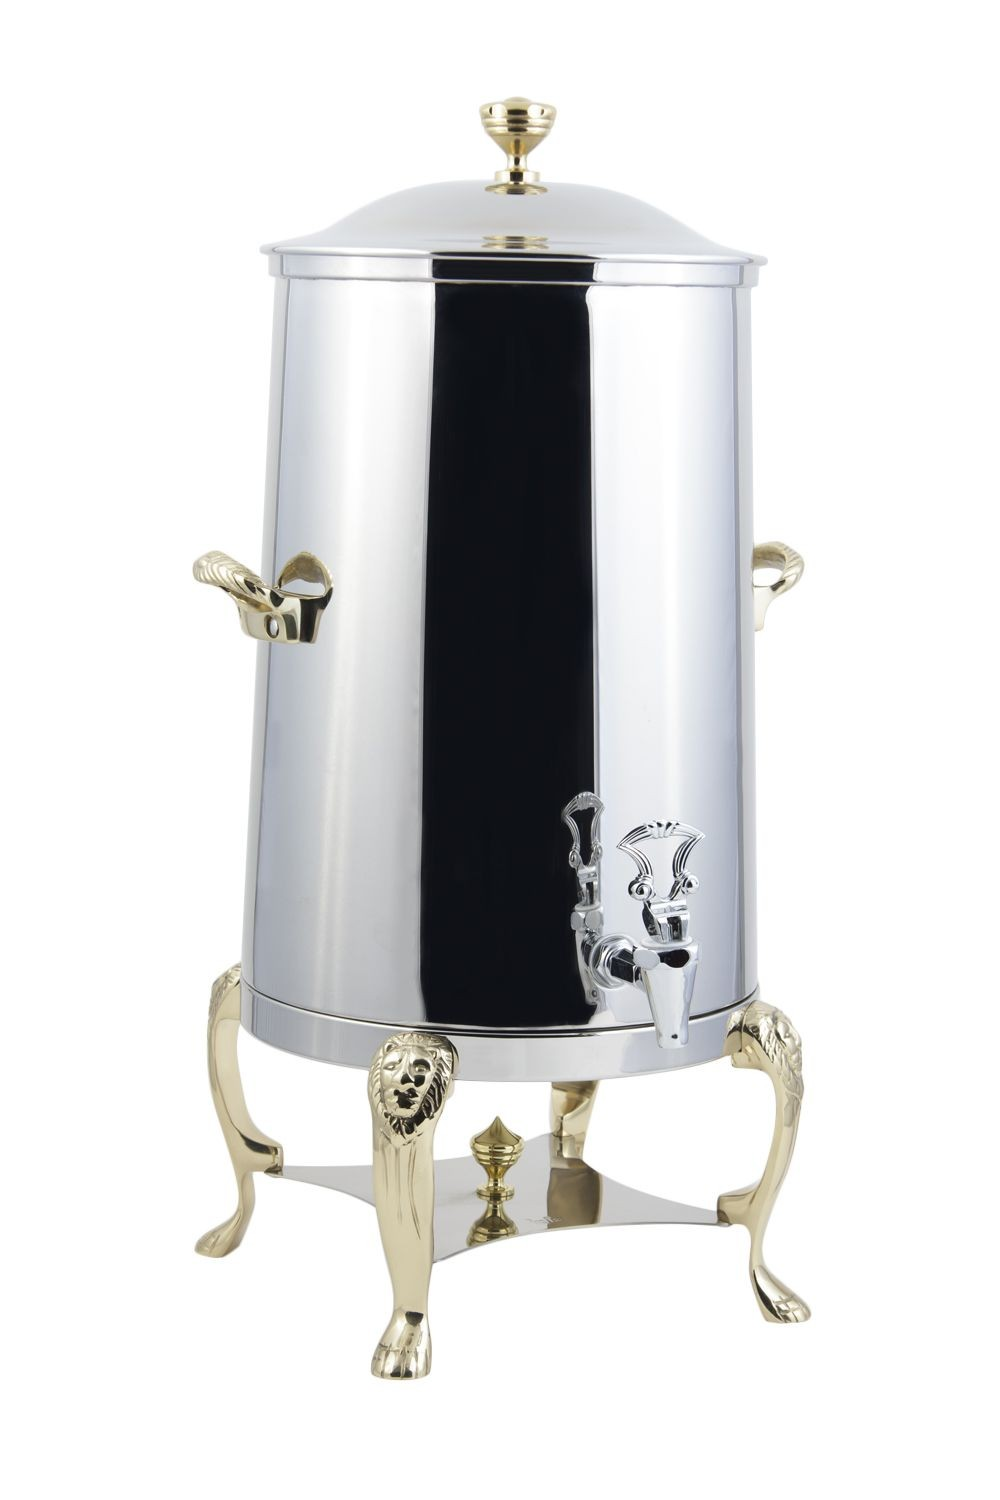 Bon Chef 48001 Lion Insulated Coffee Urn with Brass Trim, 1 1/2 Gallon